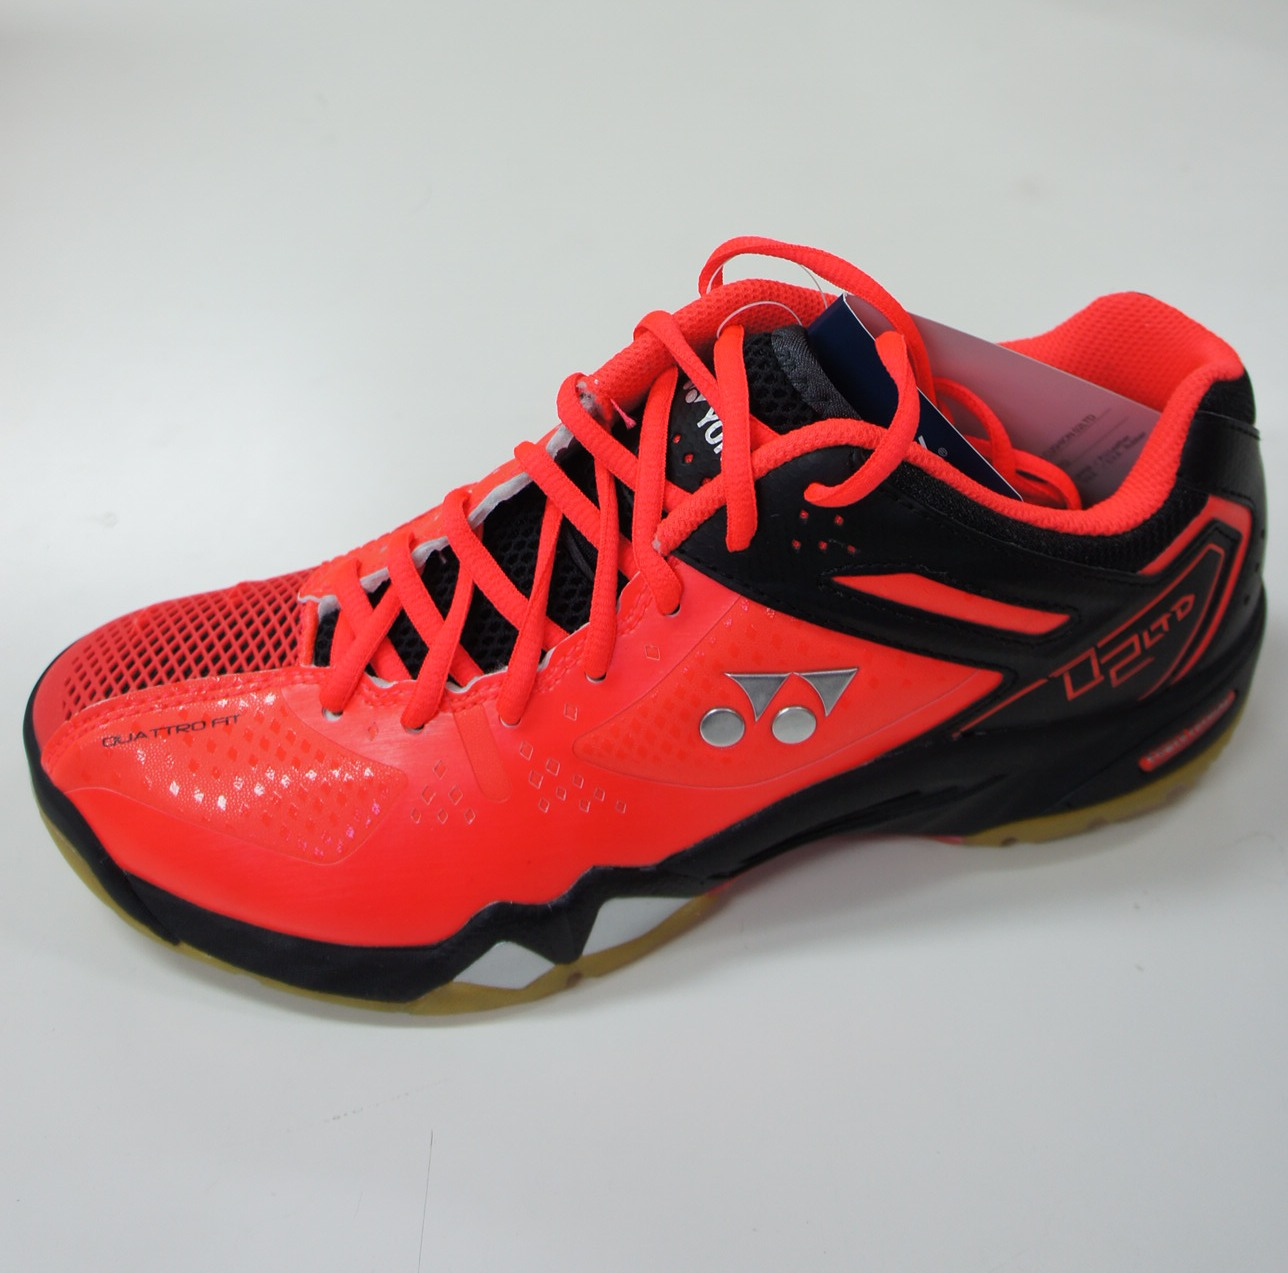 4e69652e8f0 Yonex SHB 02 Limited Edition (SHB02LTD) Red Lin Dan - Badminton Store